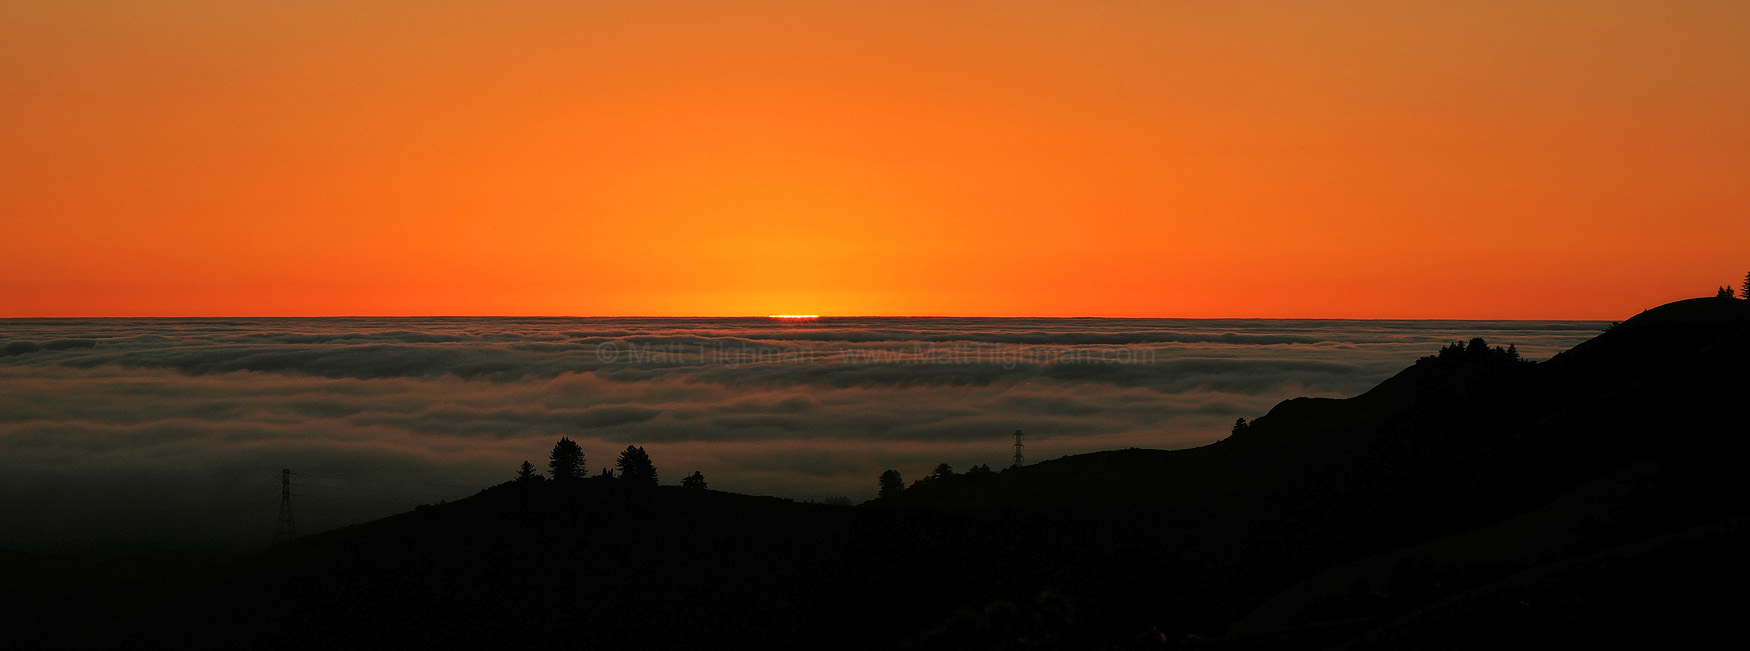 Fine art stock photograph from the Santa Cruz Mountains of California. The hills are silhouetted against a beautiful sunset, as seen from Windy Hill Open Space.